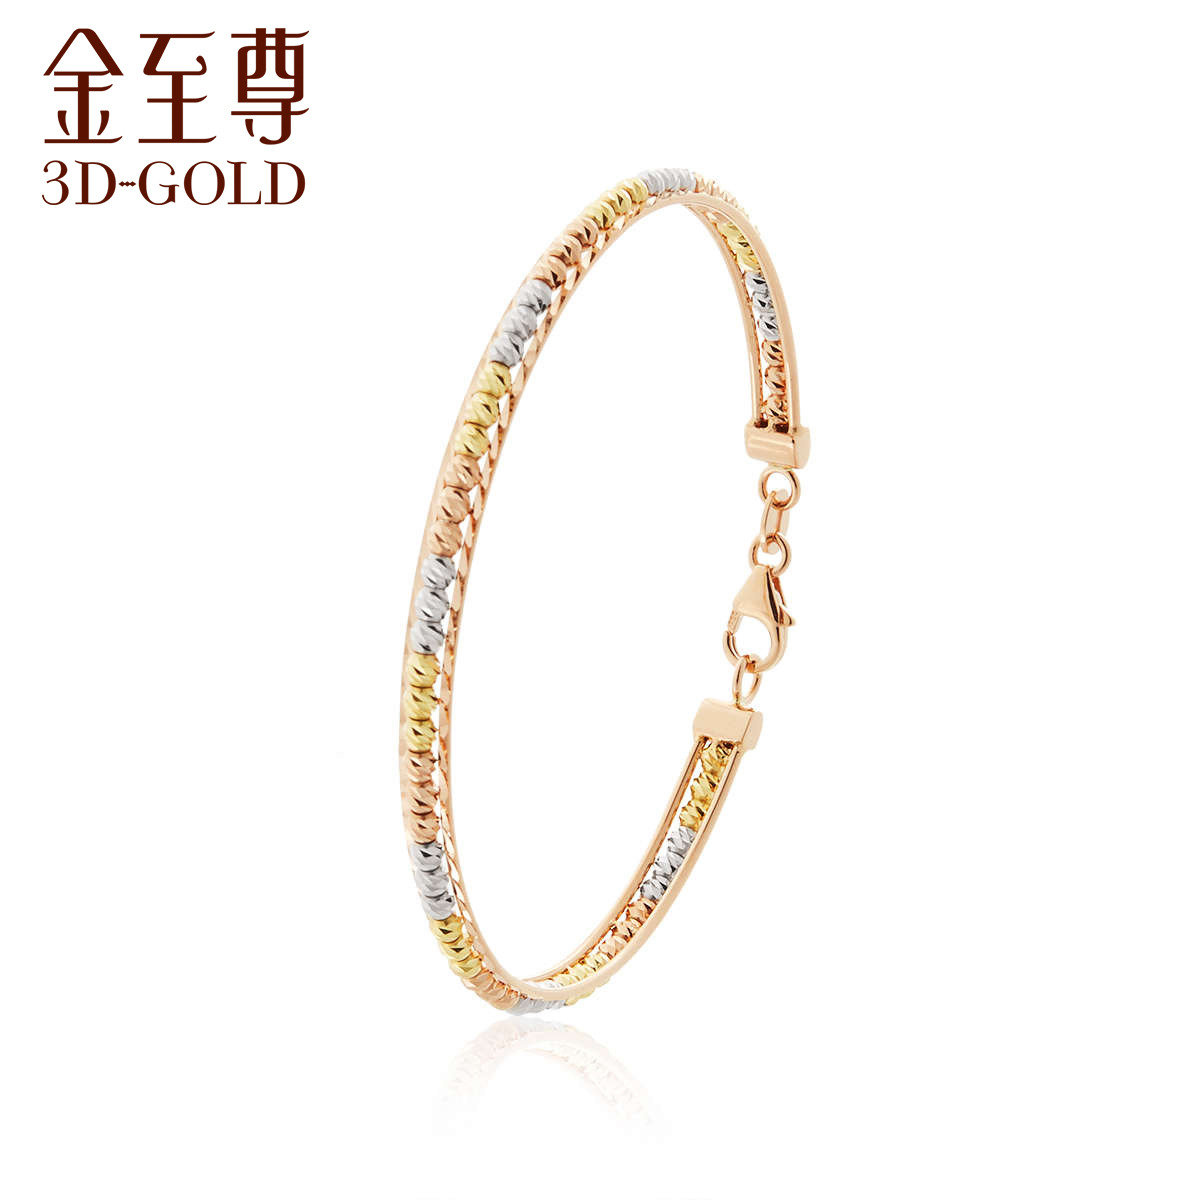 18K Multi-Color Gold Bangle